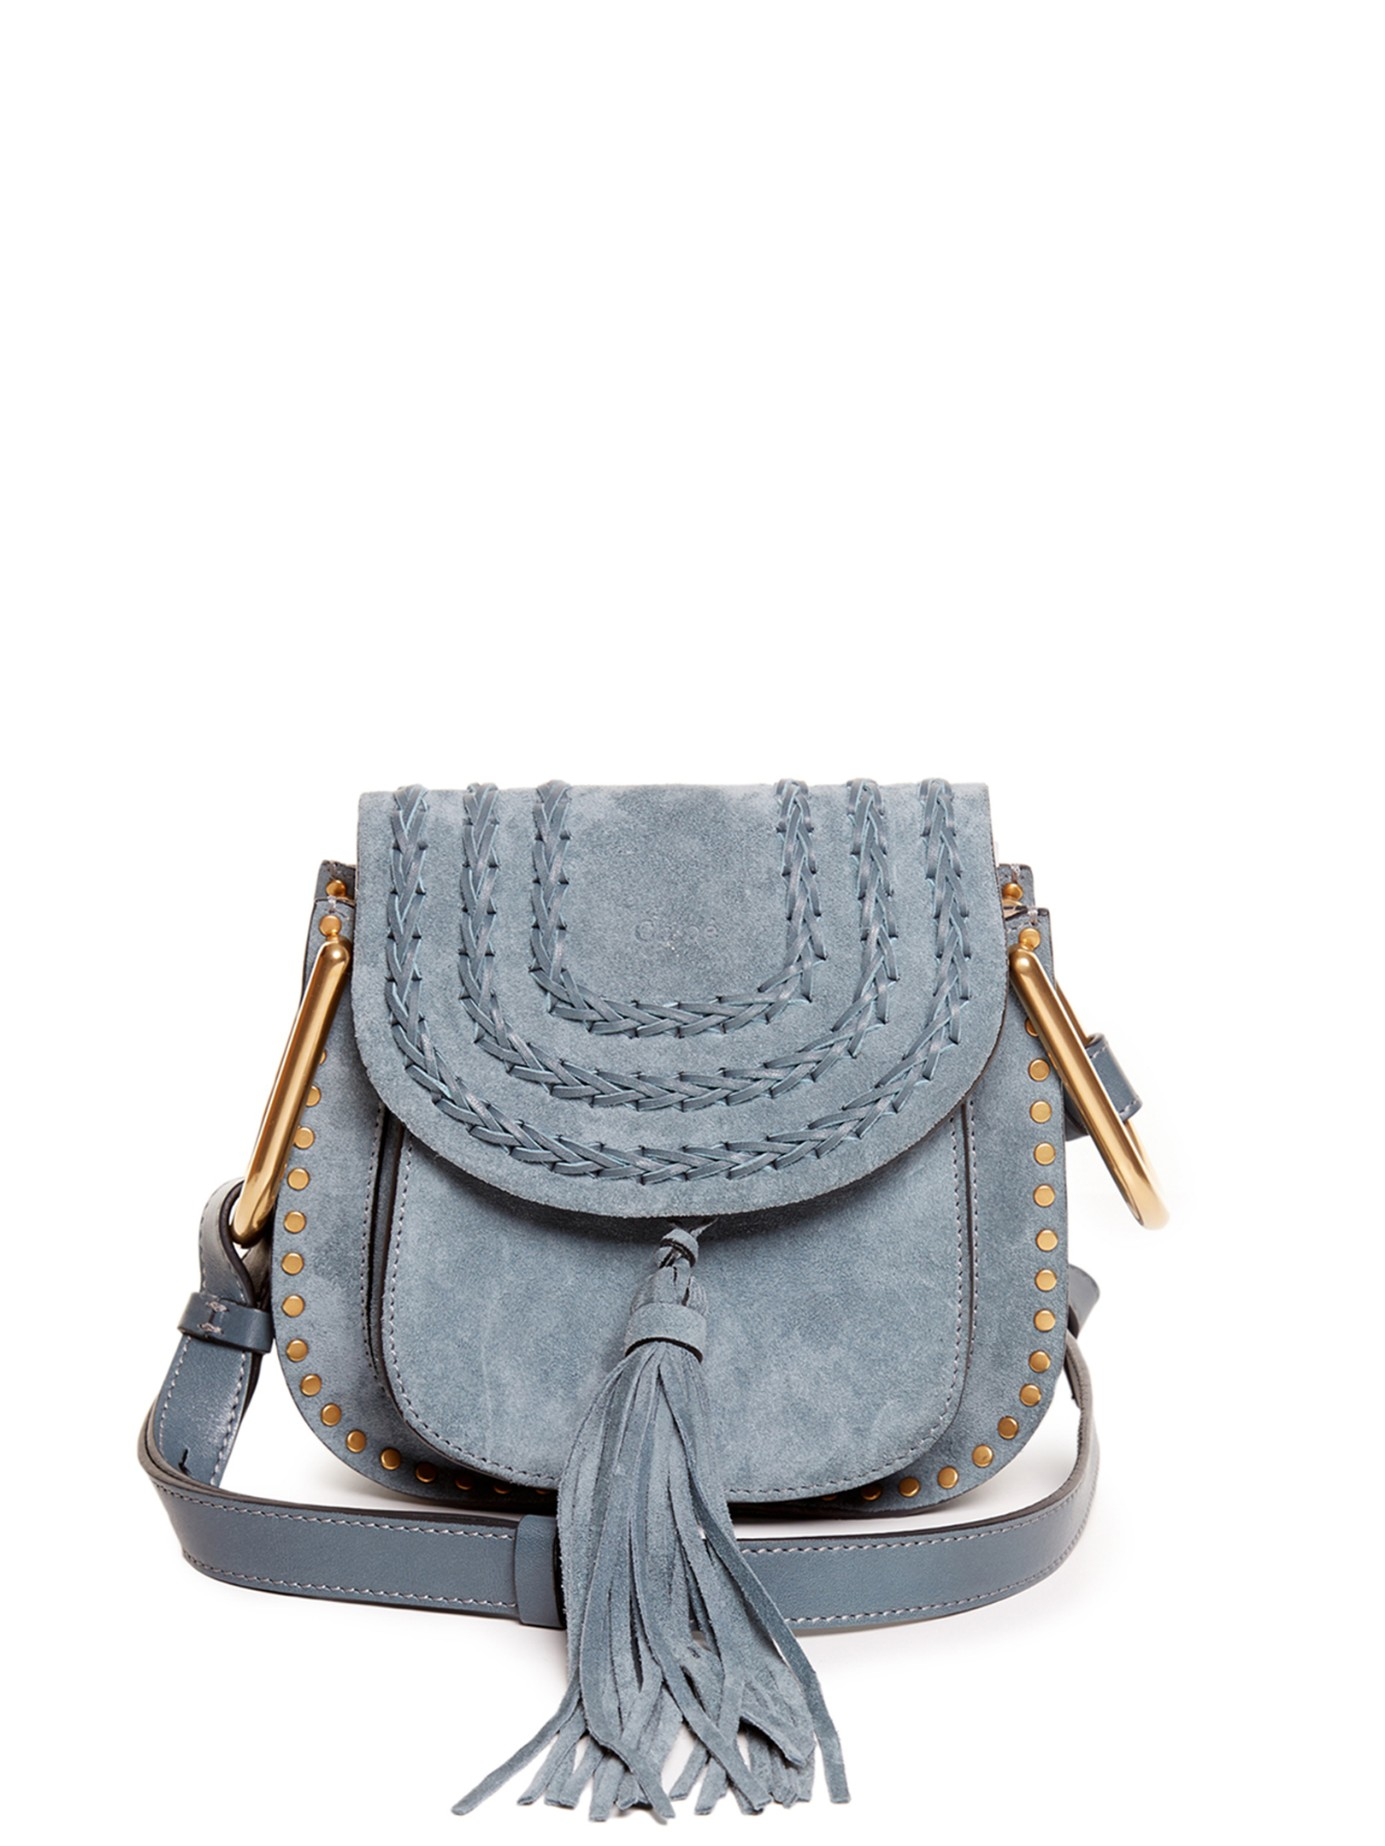 Chloe blue bag